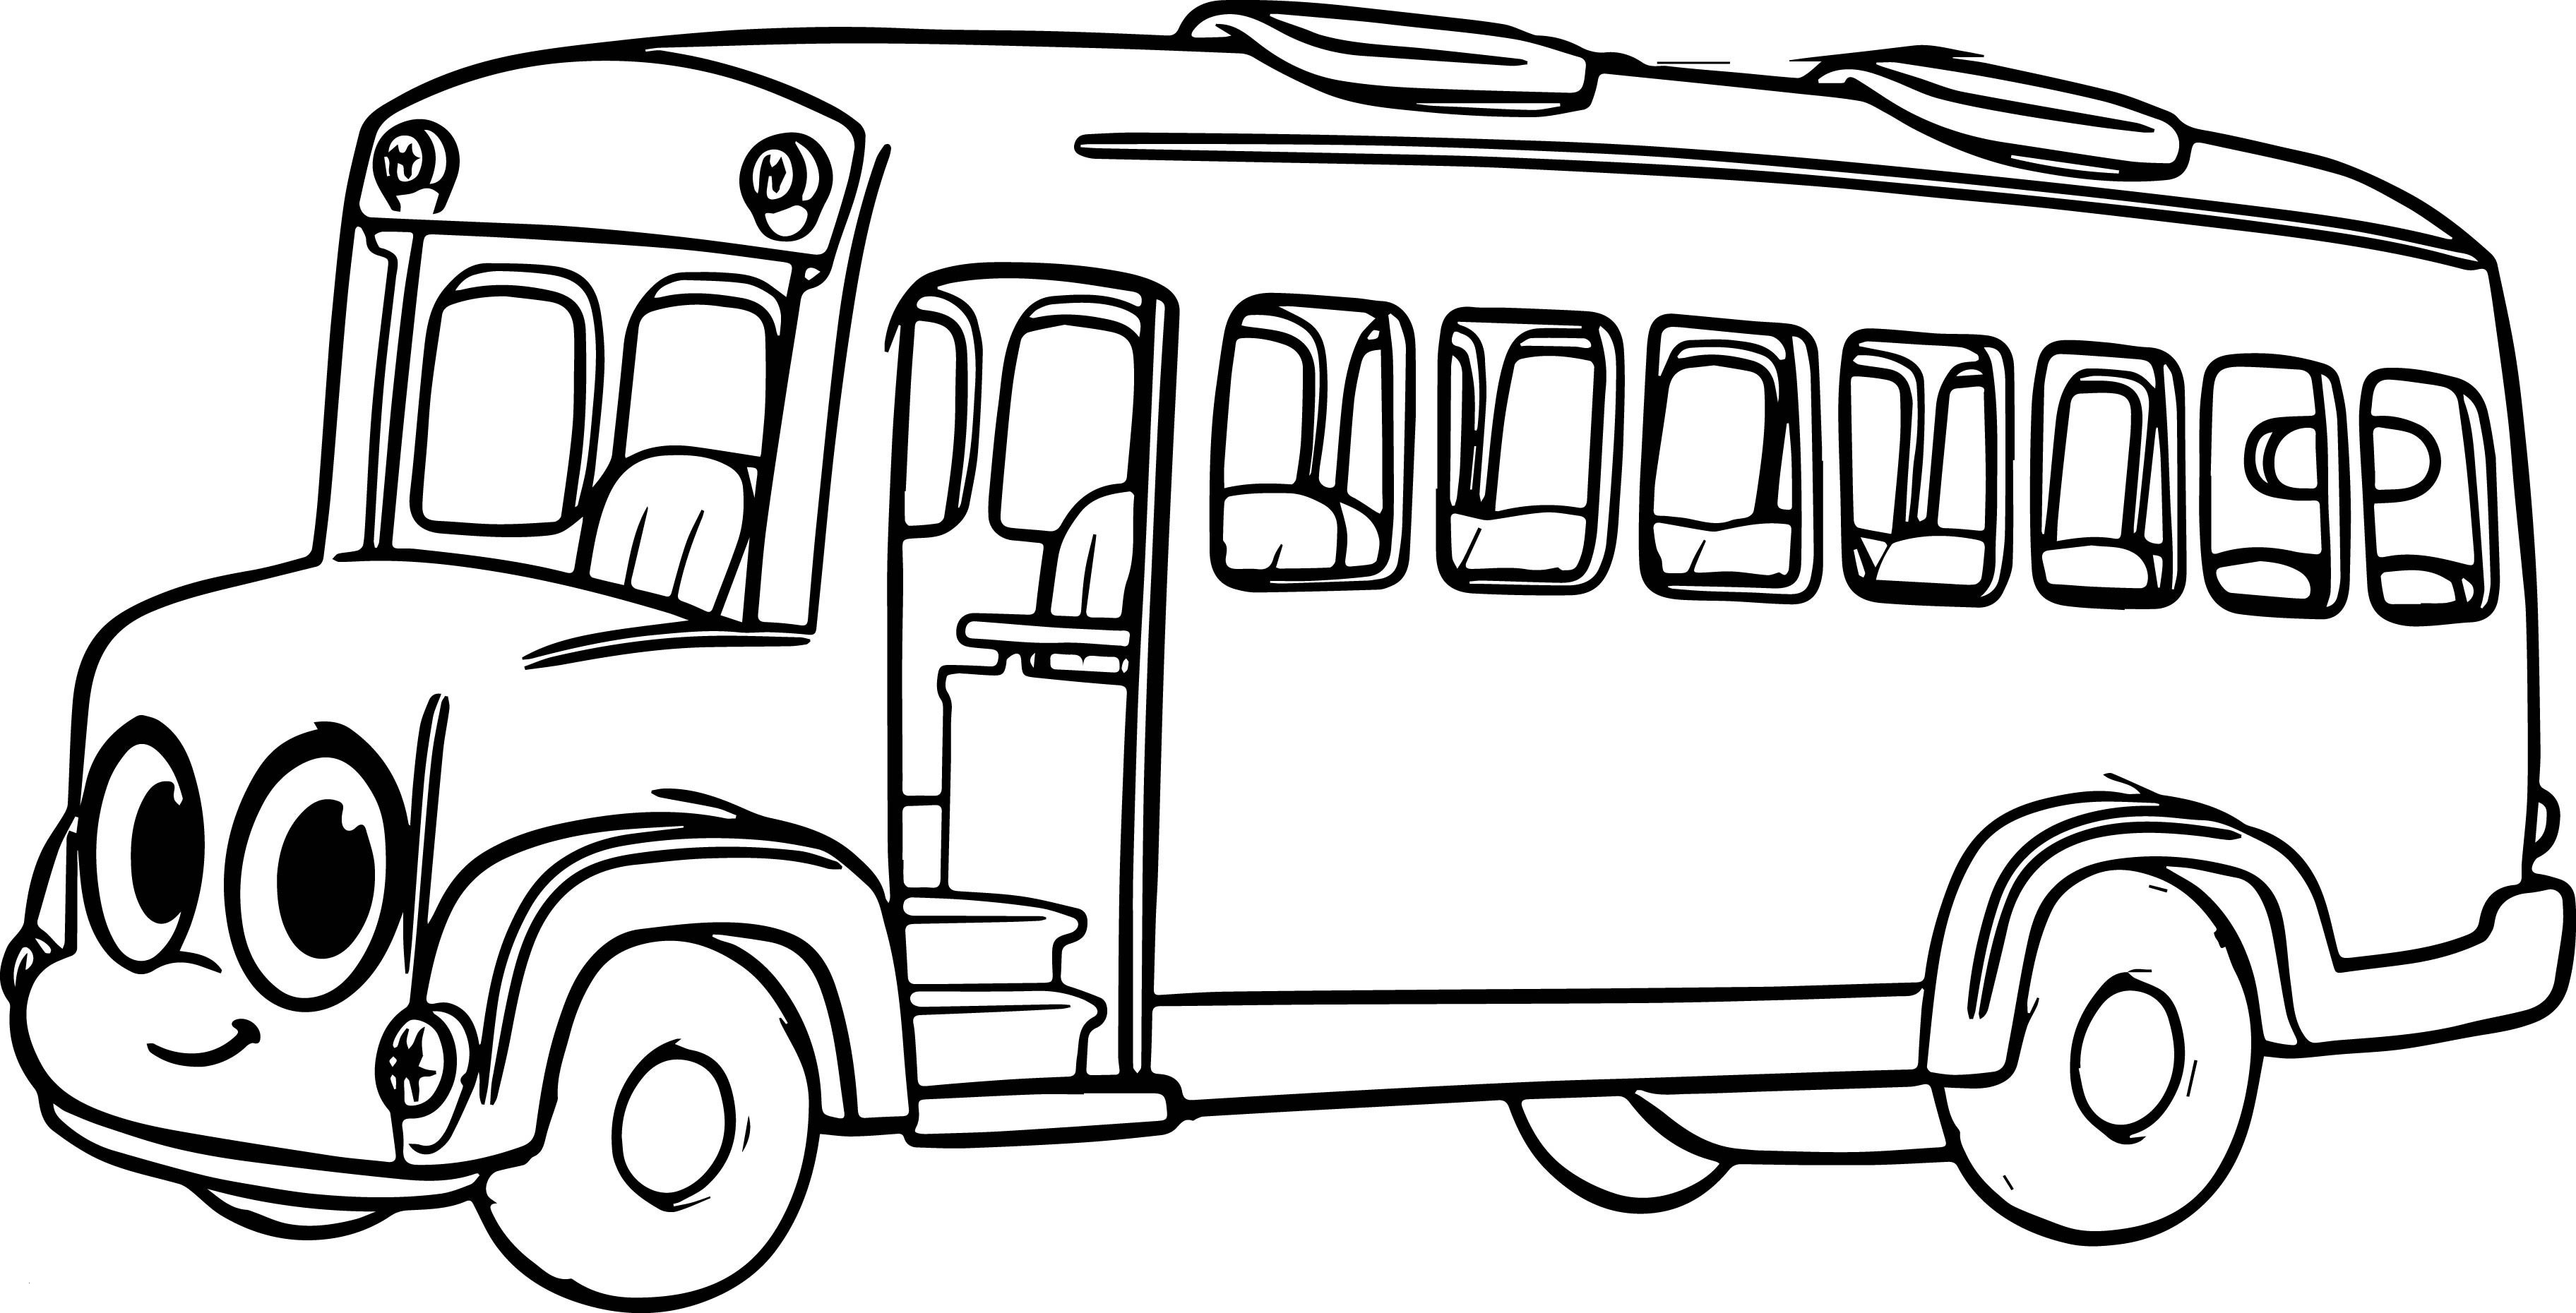 School Bus Coloring Pages Printable  Gallery 5h - Save it to your computer